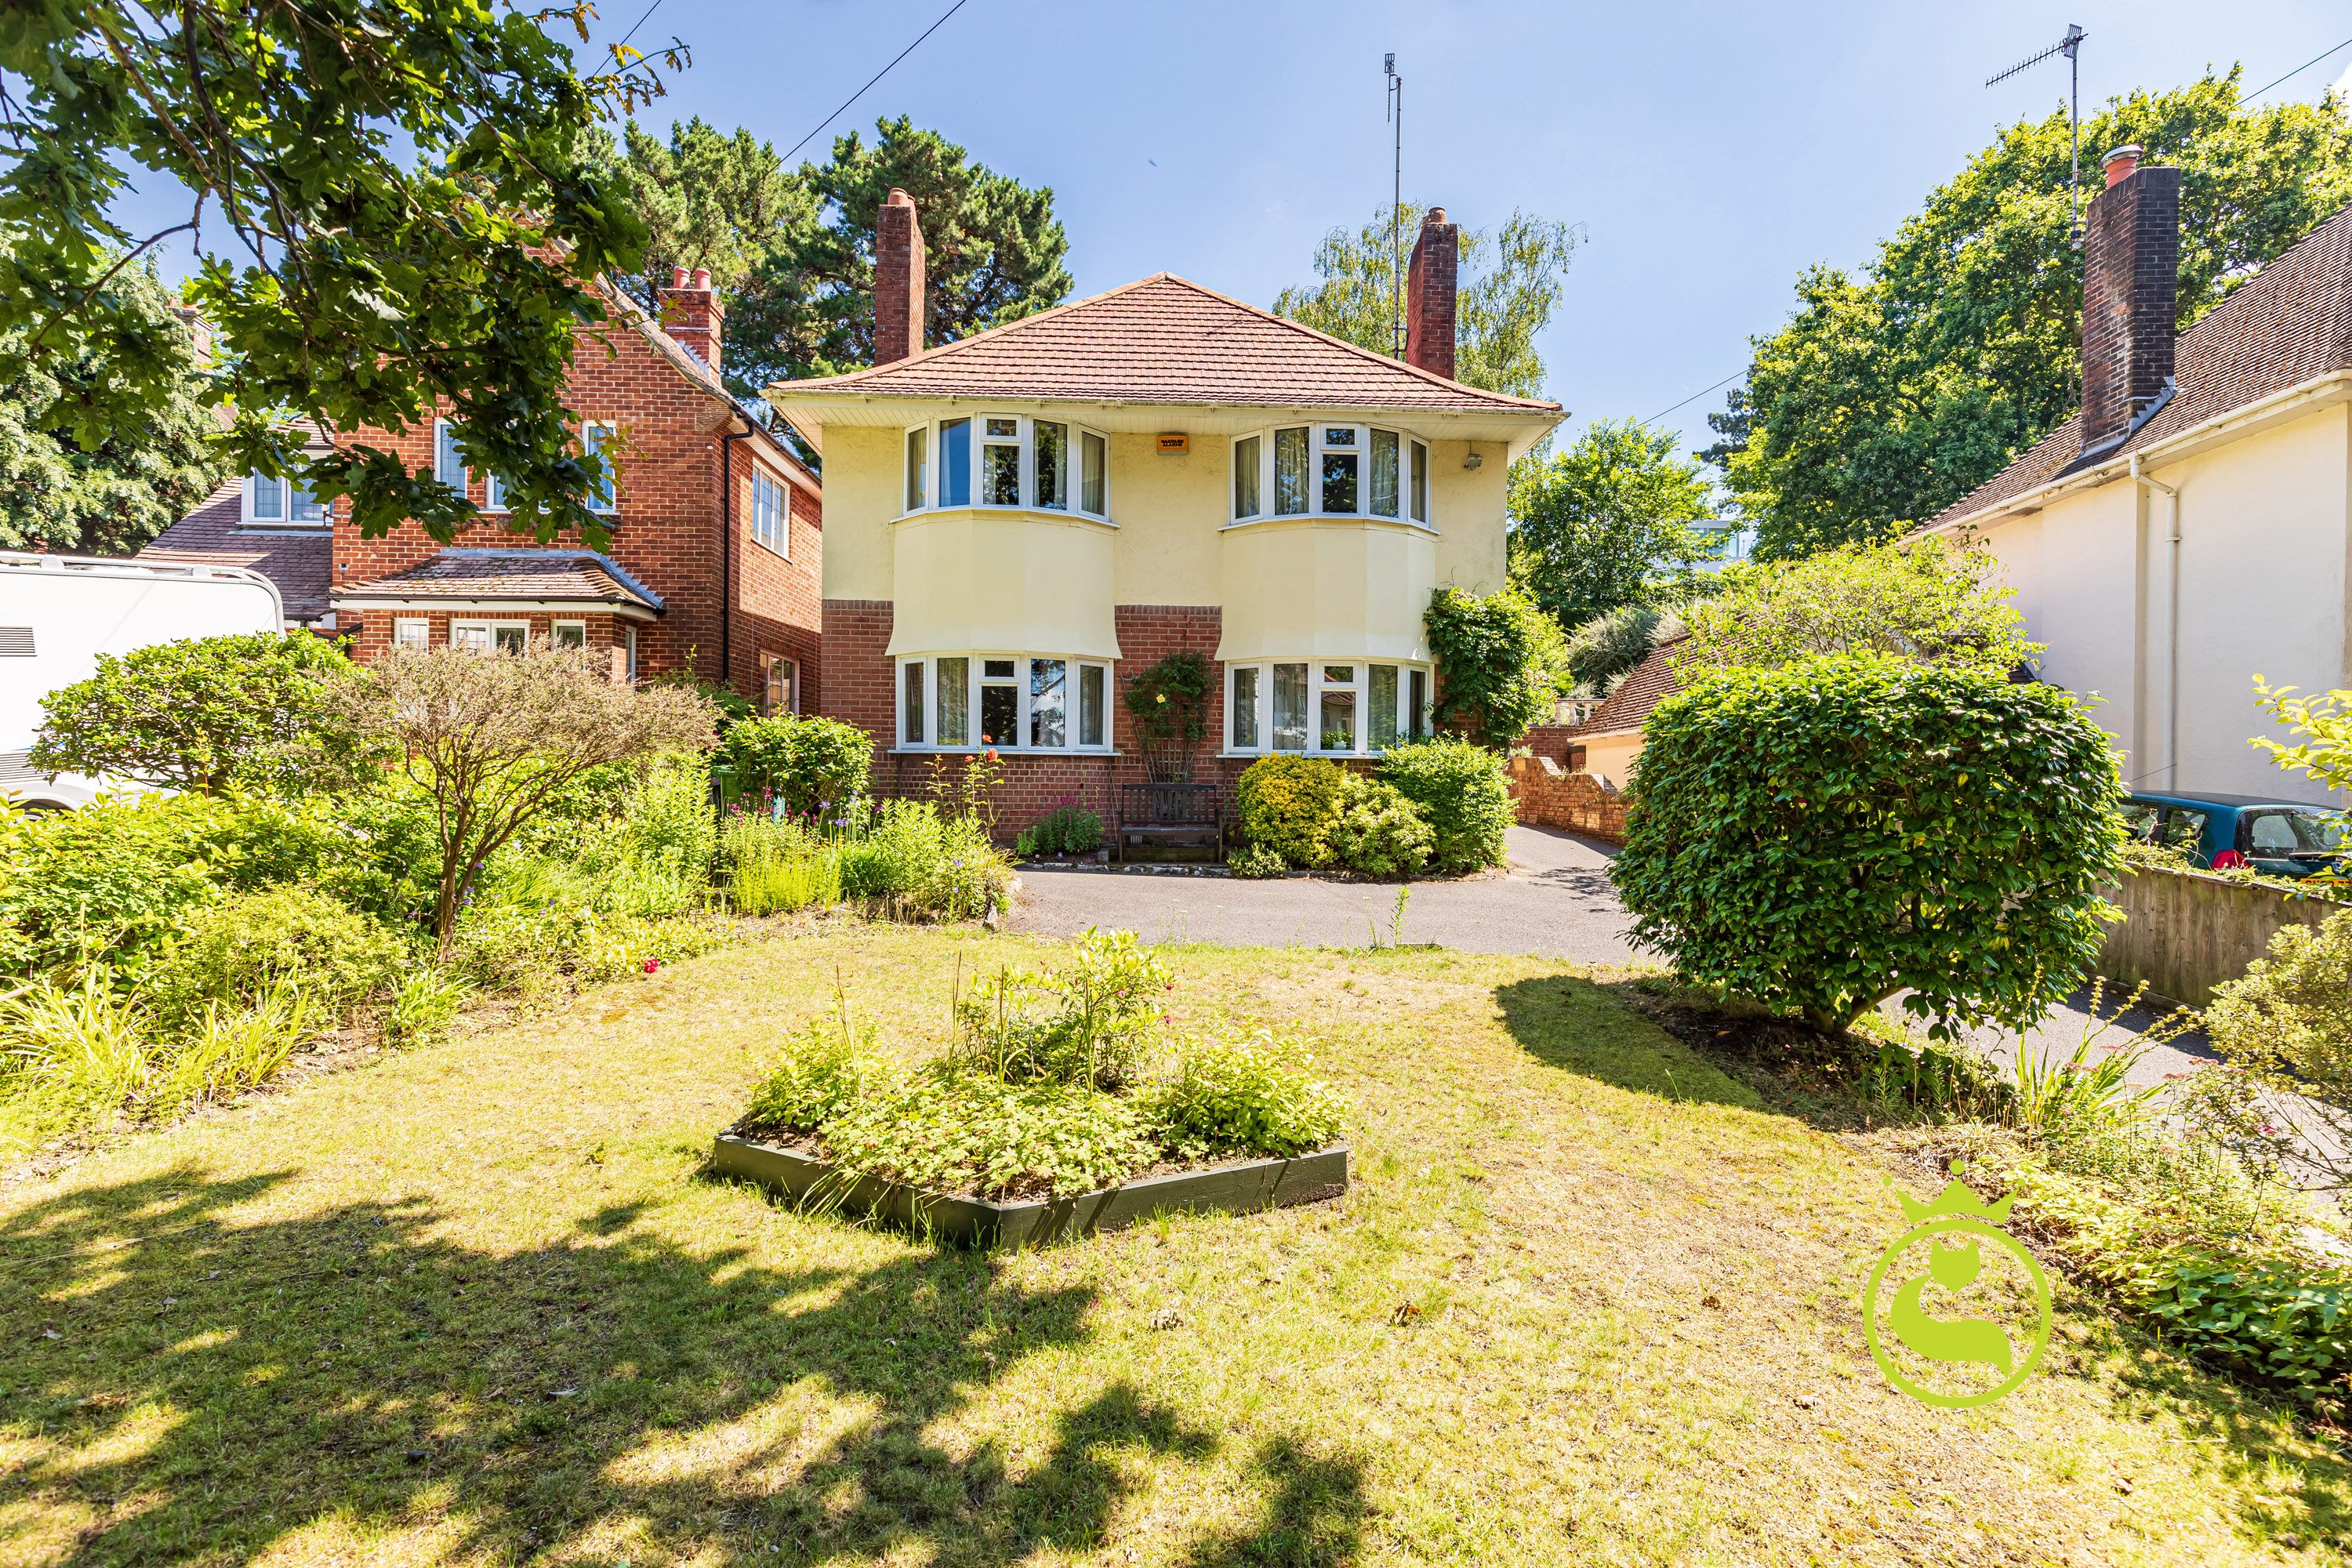 Make your mark on this family home in a lovely tree lined cul-de-sac location close to Ashley Cross Village.